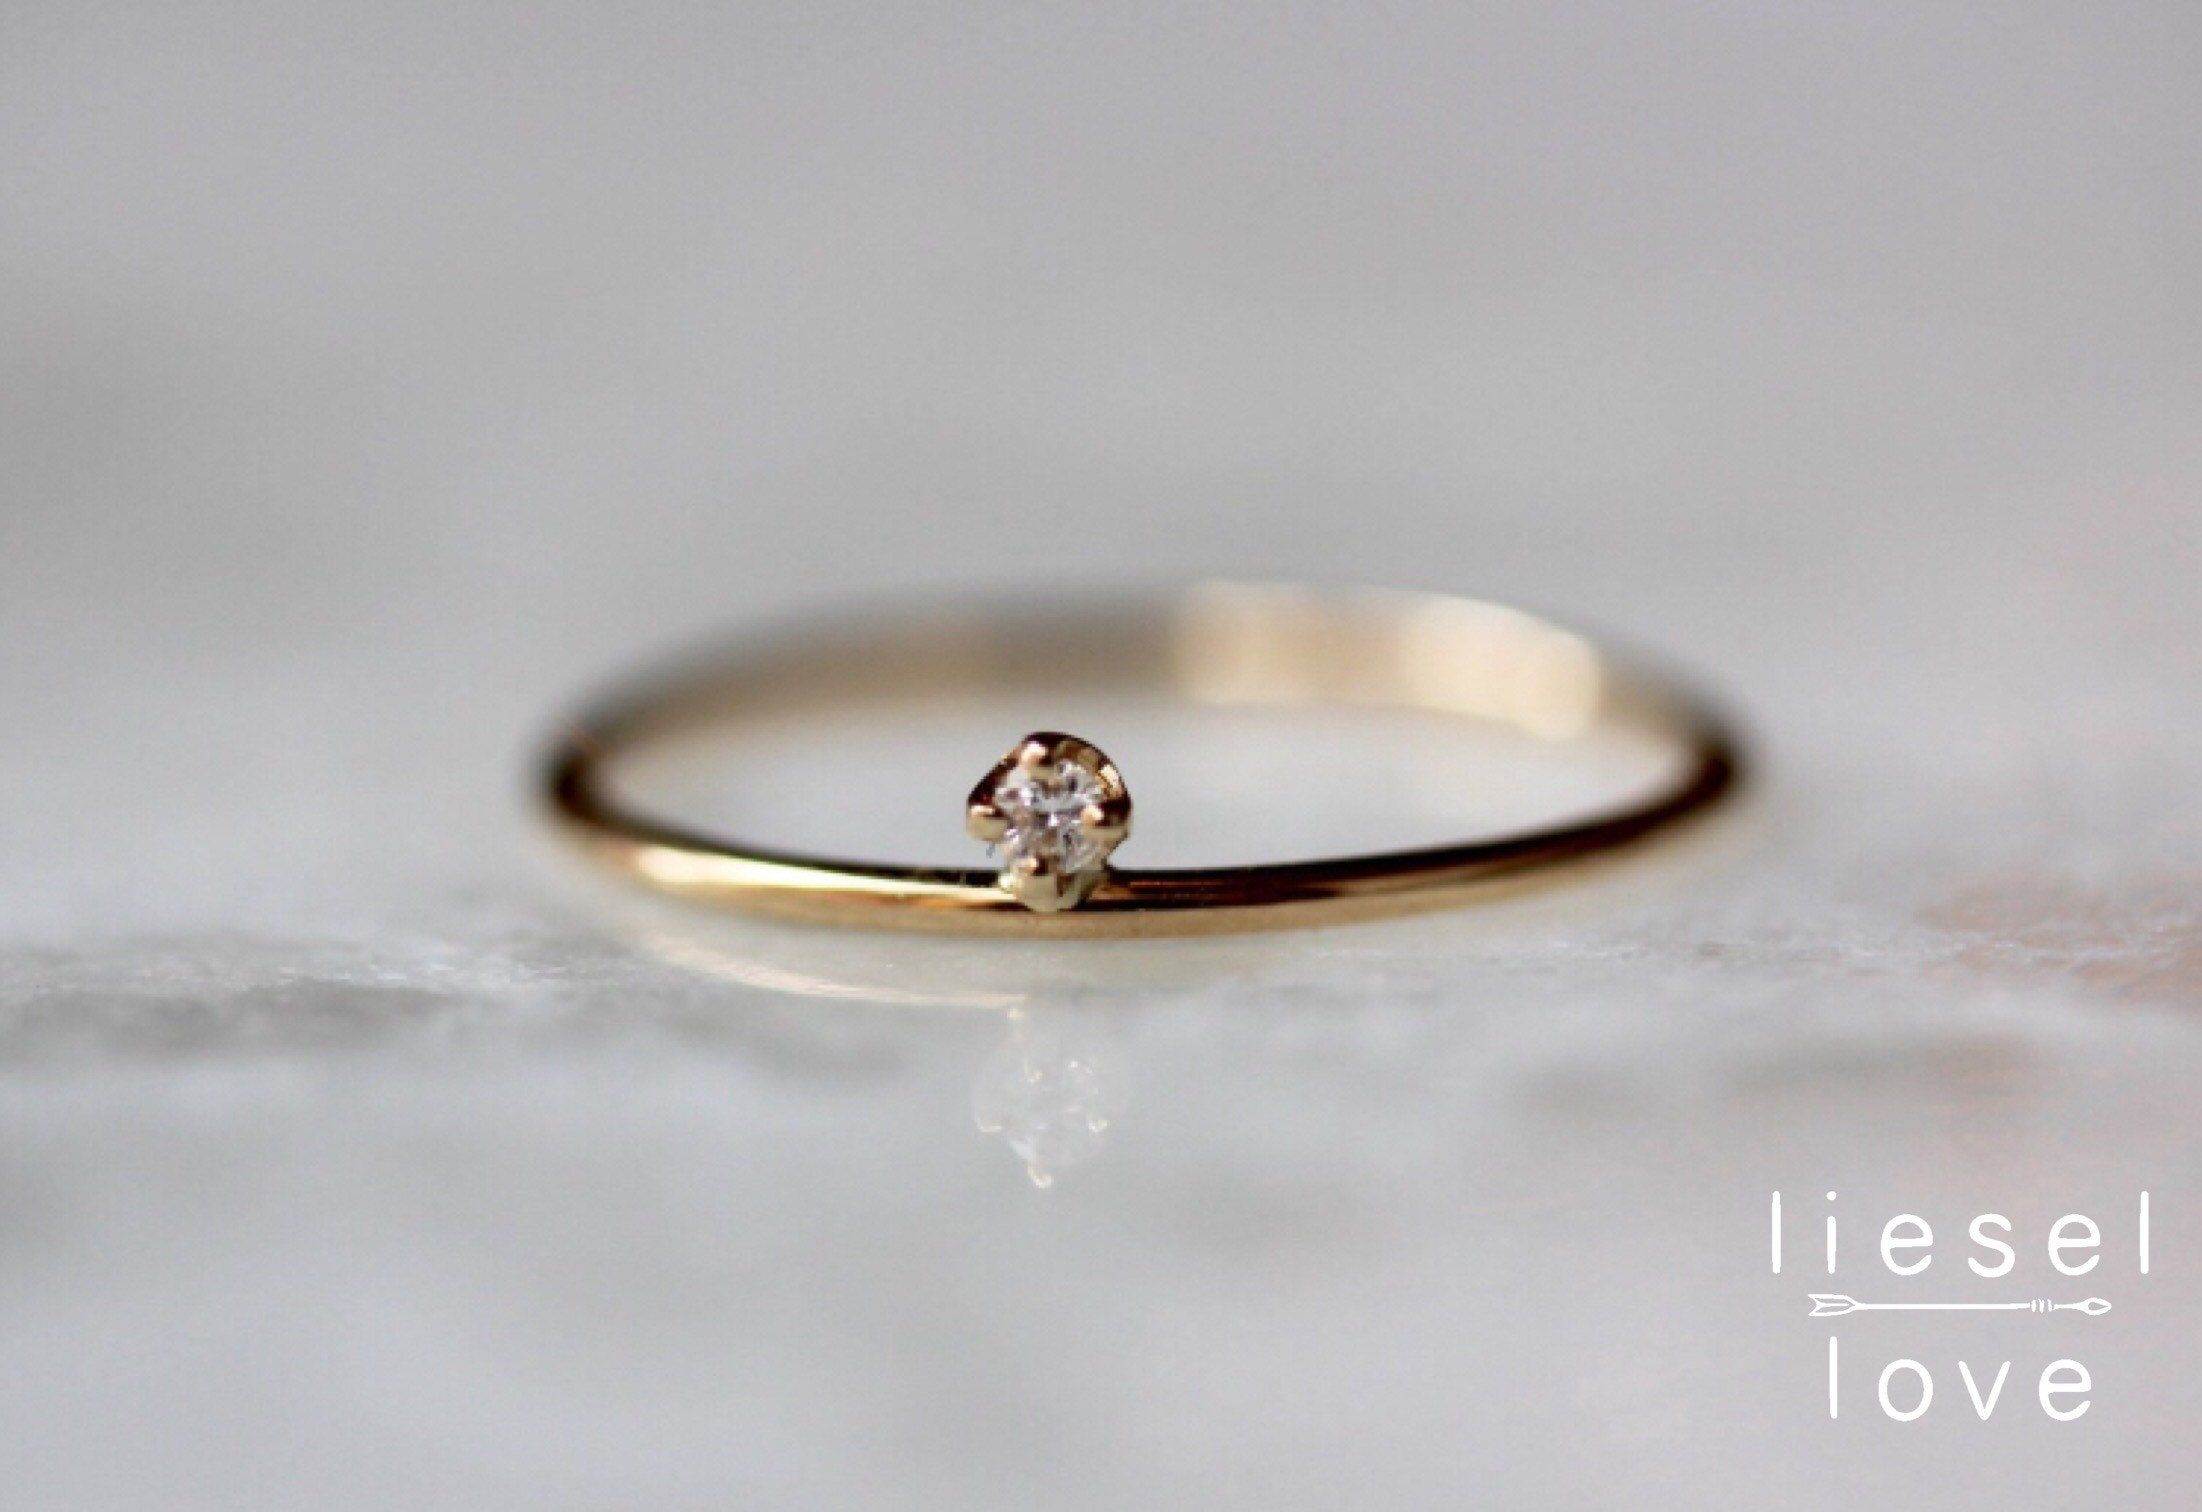 Simple, classic and oh-so-cute! Our tiny floating diamond ring stacks well with other rings, and also looks great as a midi ring! - Handcrafted out of 14K yellow, white or rose gold - Diamond measures 1.7mm, conflict free - Band is approximately 1.3mm in width Processing times - Current processing time is 1 - 3 weeks. Each Item is handmade to order with love and care! In Stock Items - Contact Liesel Love with any rush order questions, or to see if we have anything ready made and in stock. Return